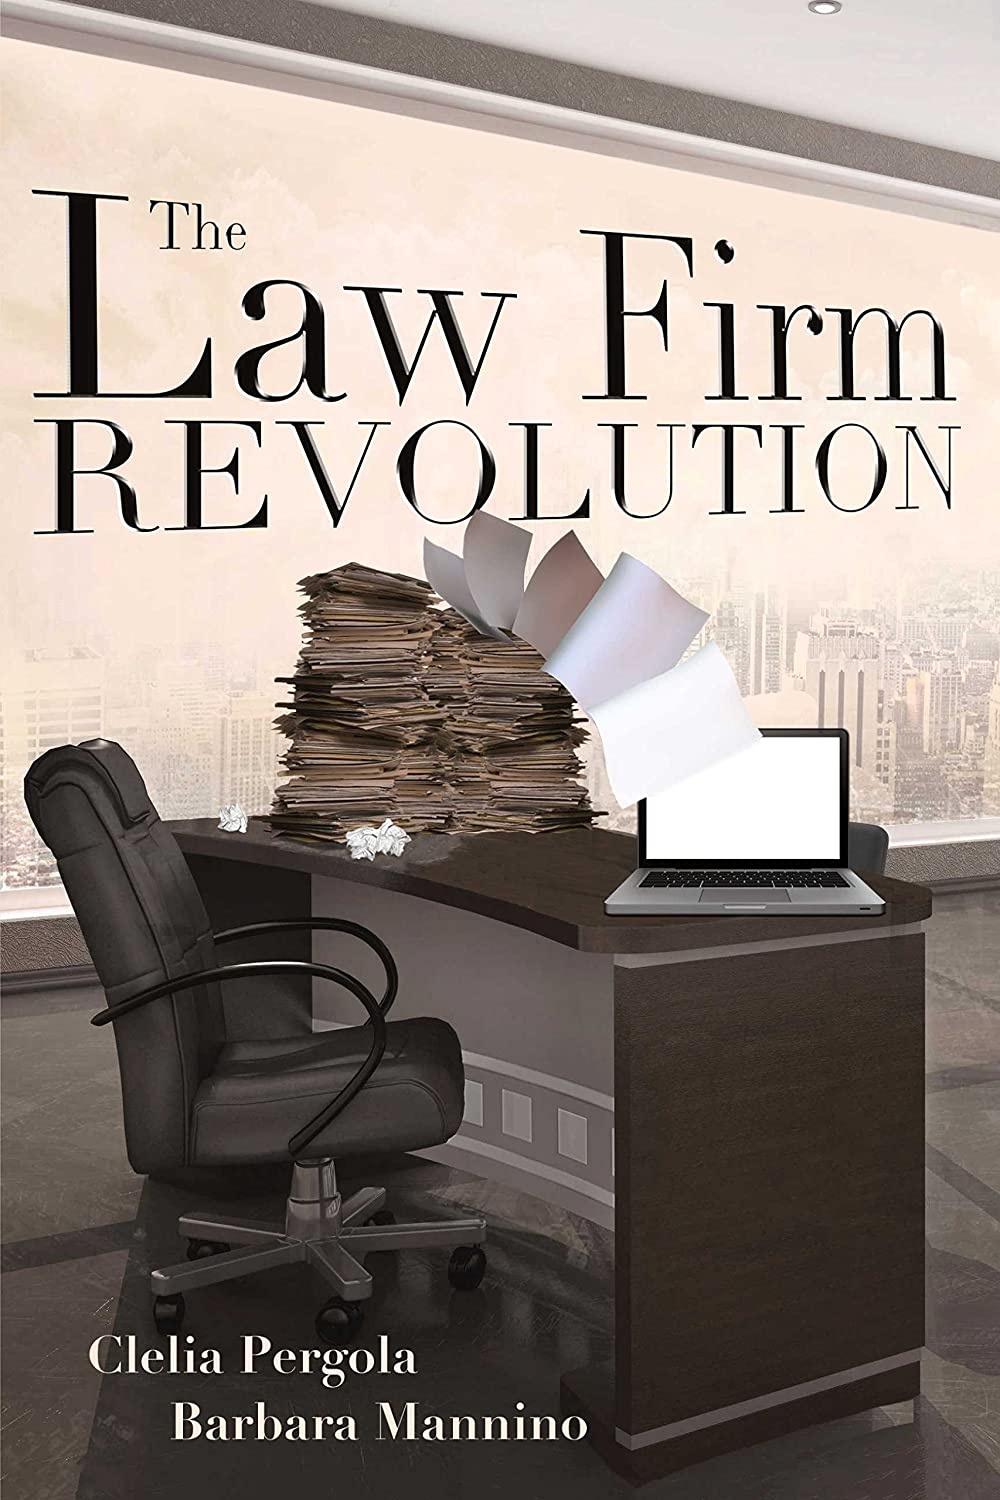 The Law Firm Revolution (English Edition) eBook: Pergola, Clelia, Mannino, Barbara: Amazon.es: Tienda Kindle